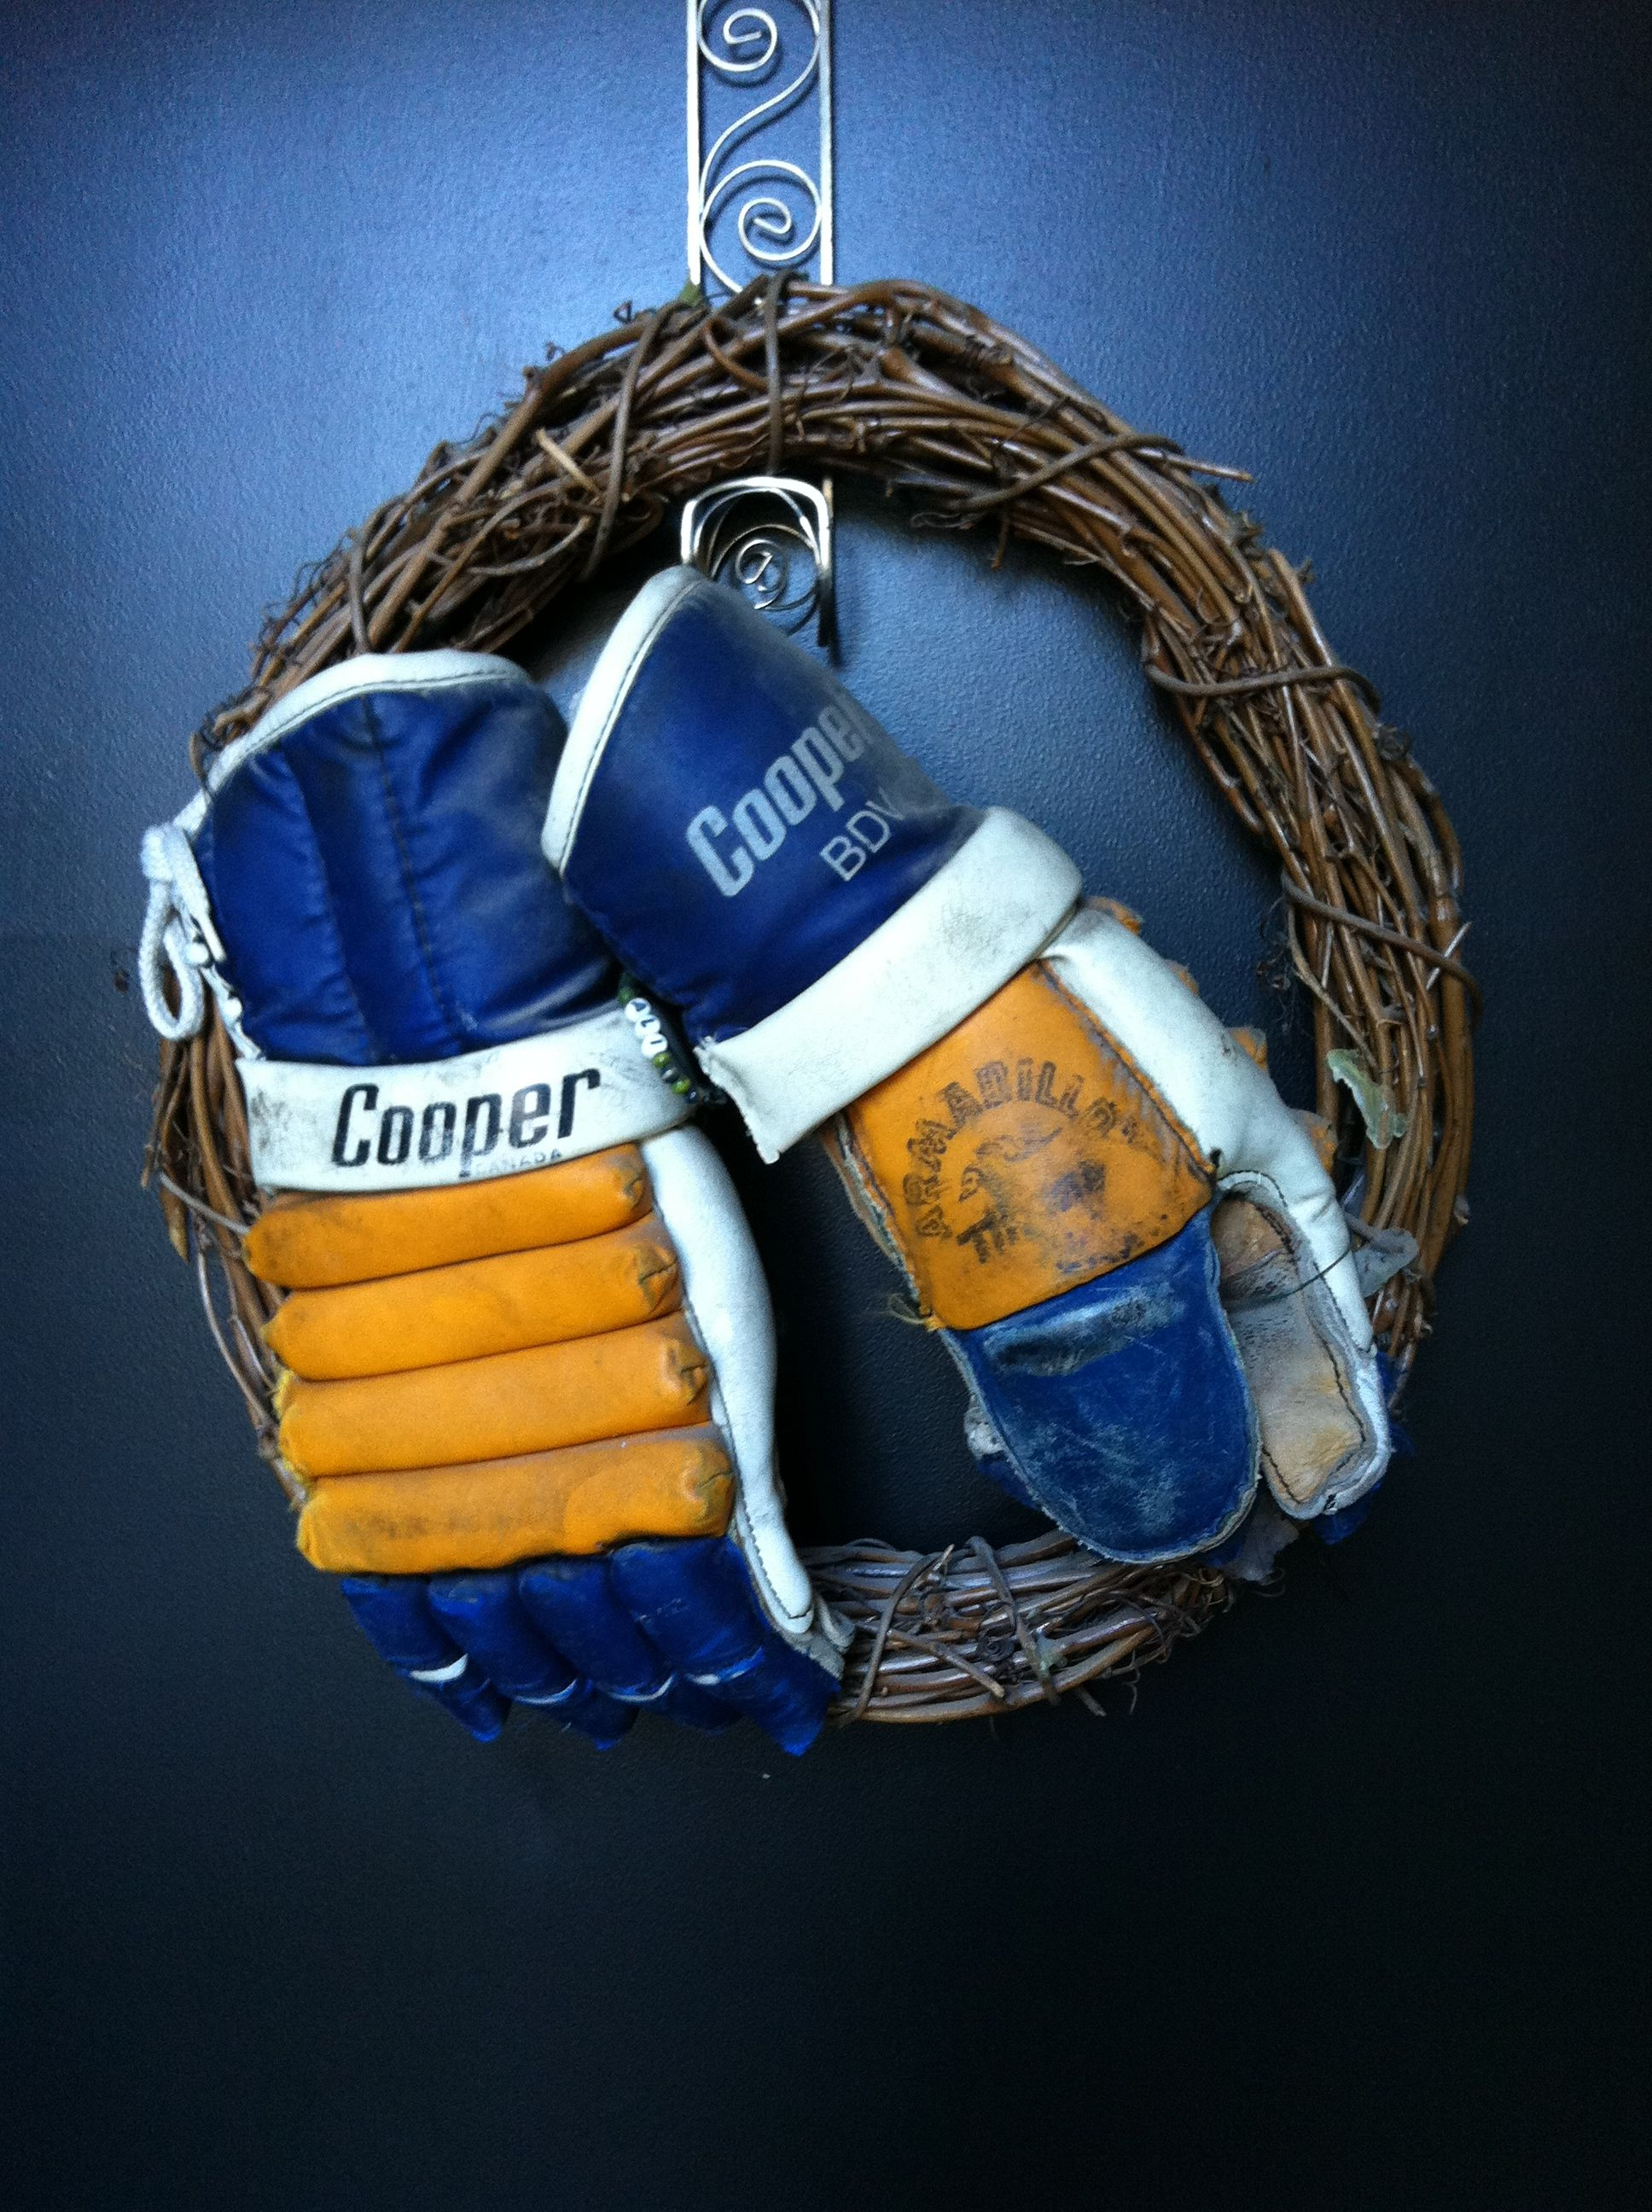 We all have old pairs of hockey gloves laying around! How